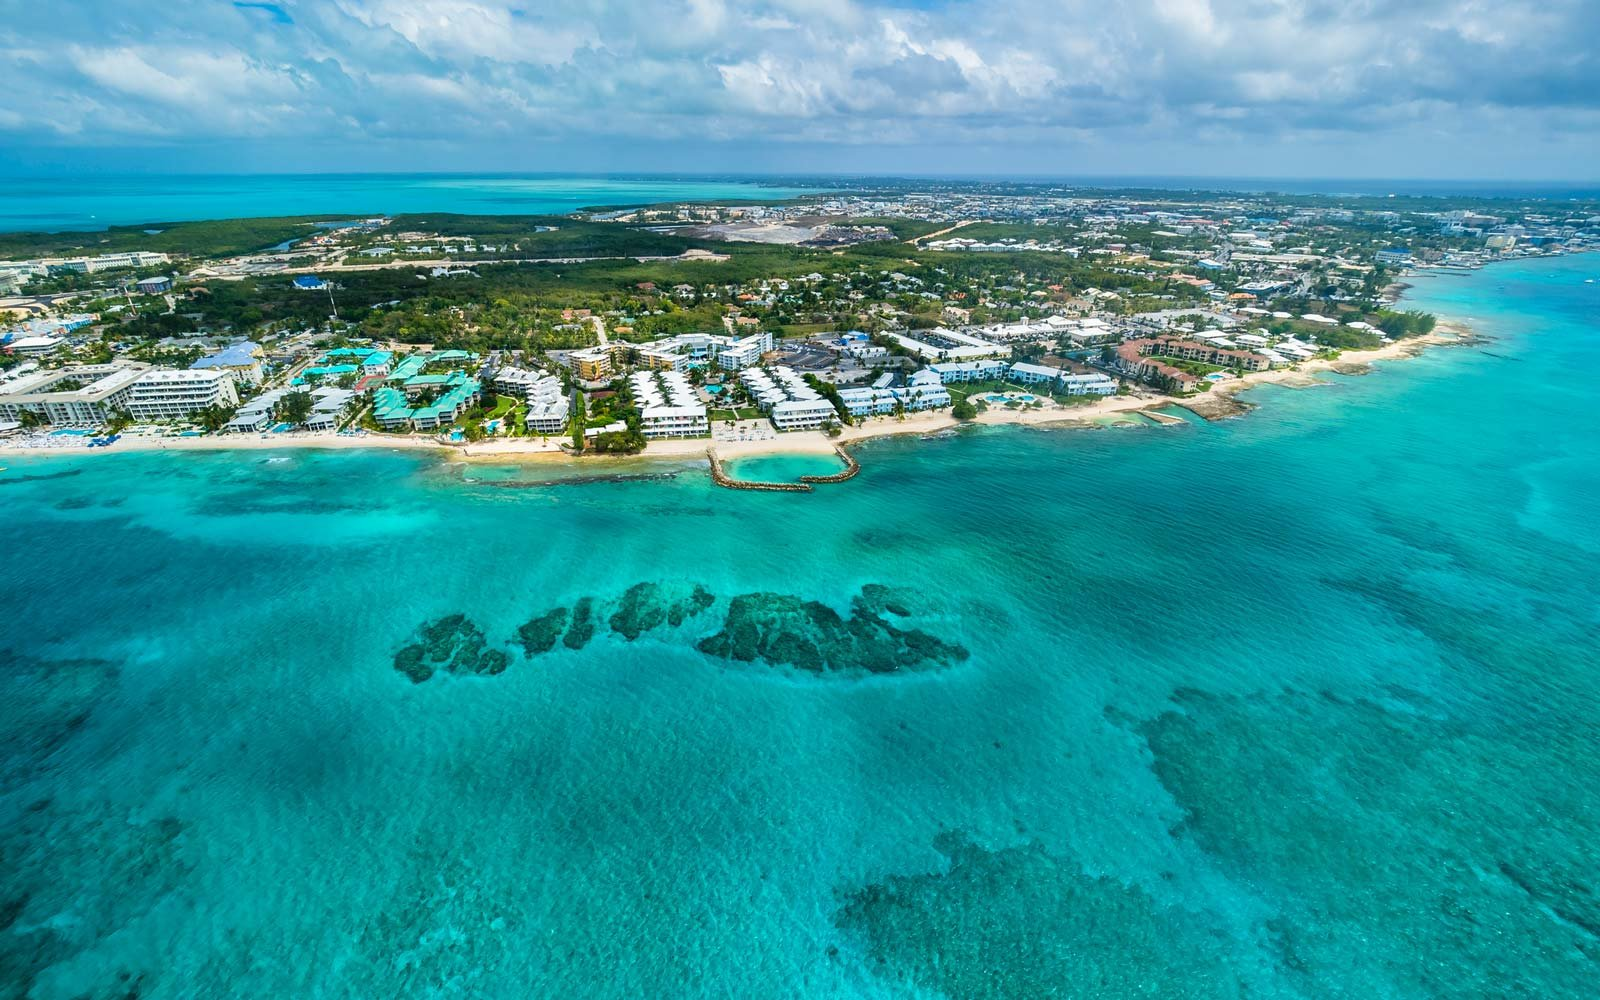 Caribbean, Cayman Islands, George Town, Luxury resorts and Seven Mile Beach